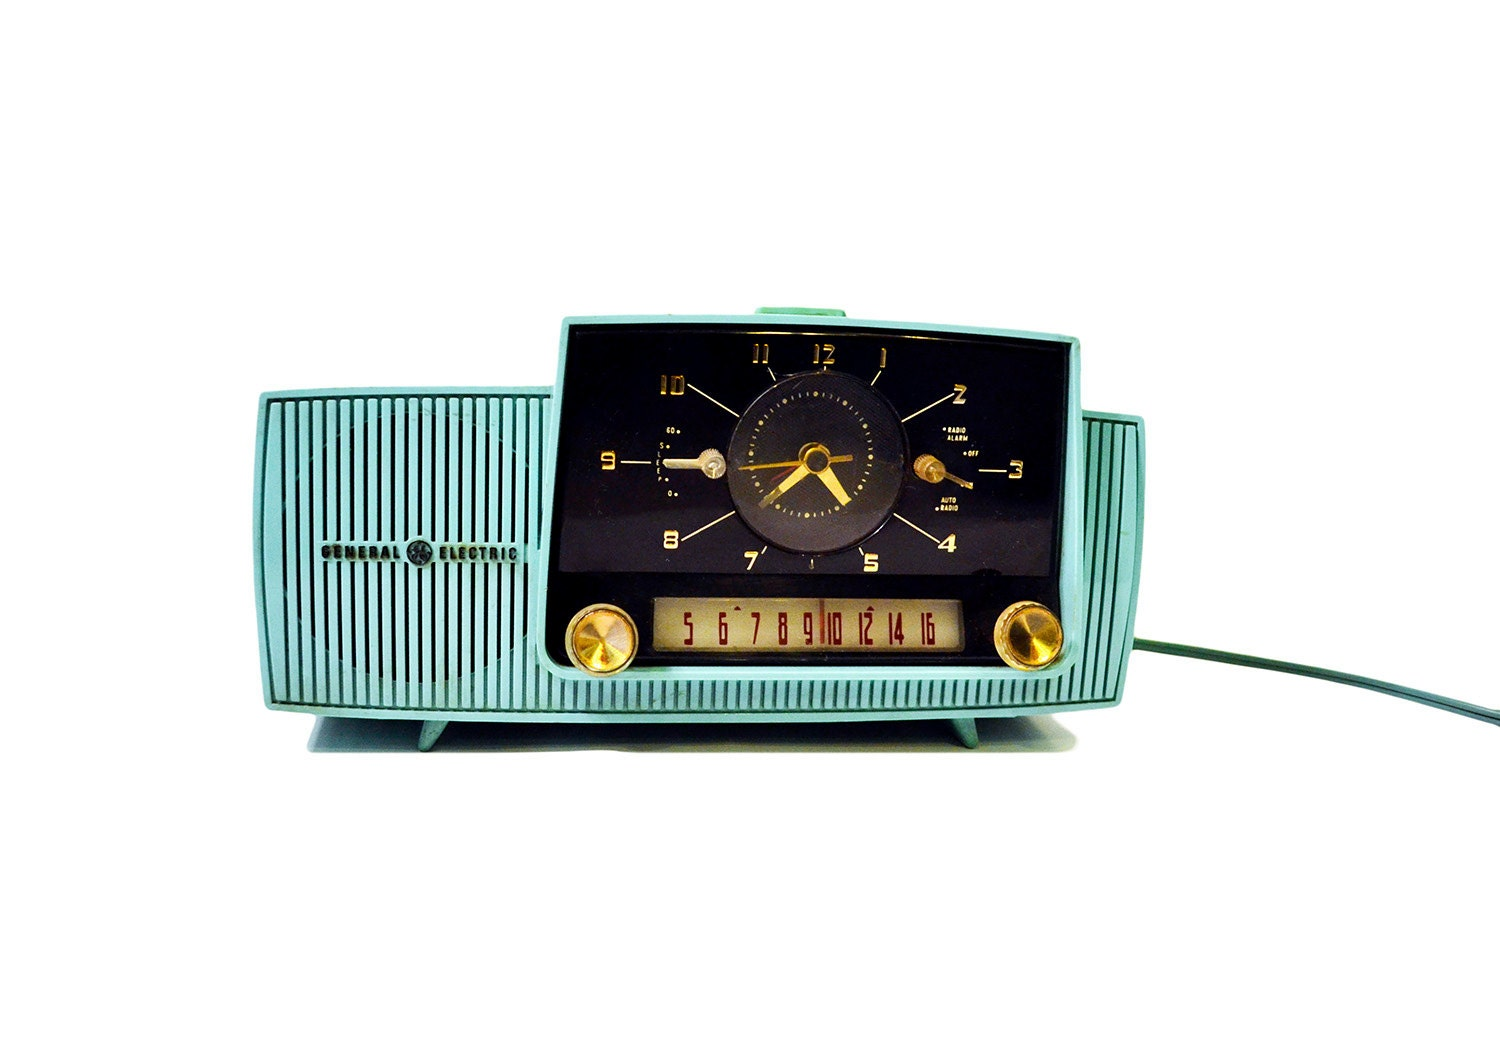 Vintage 1950's Turquoise Radio GE AM Tube Radio Antique